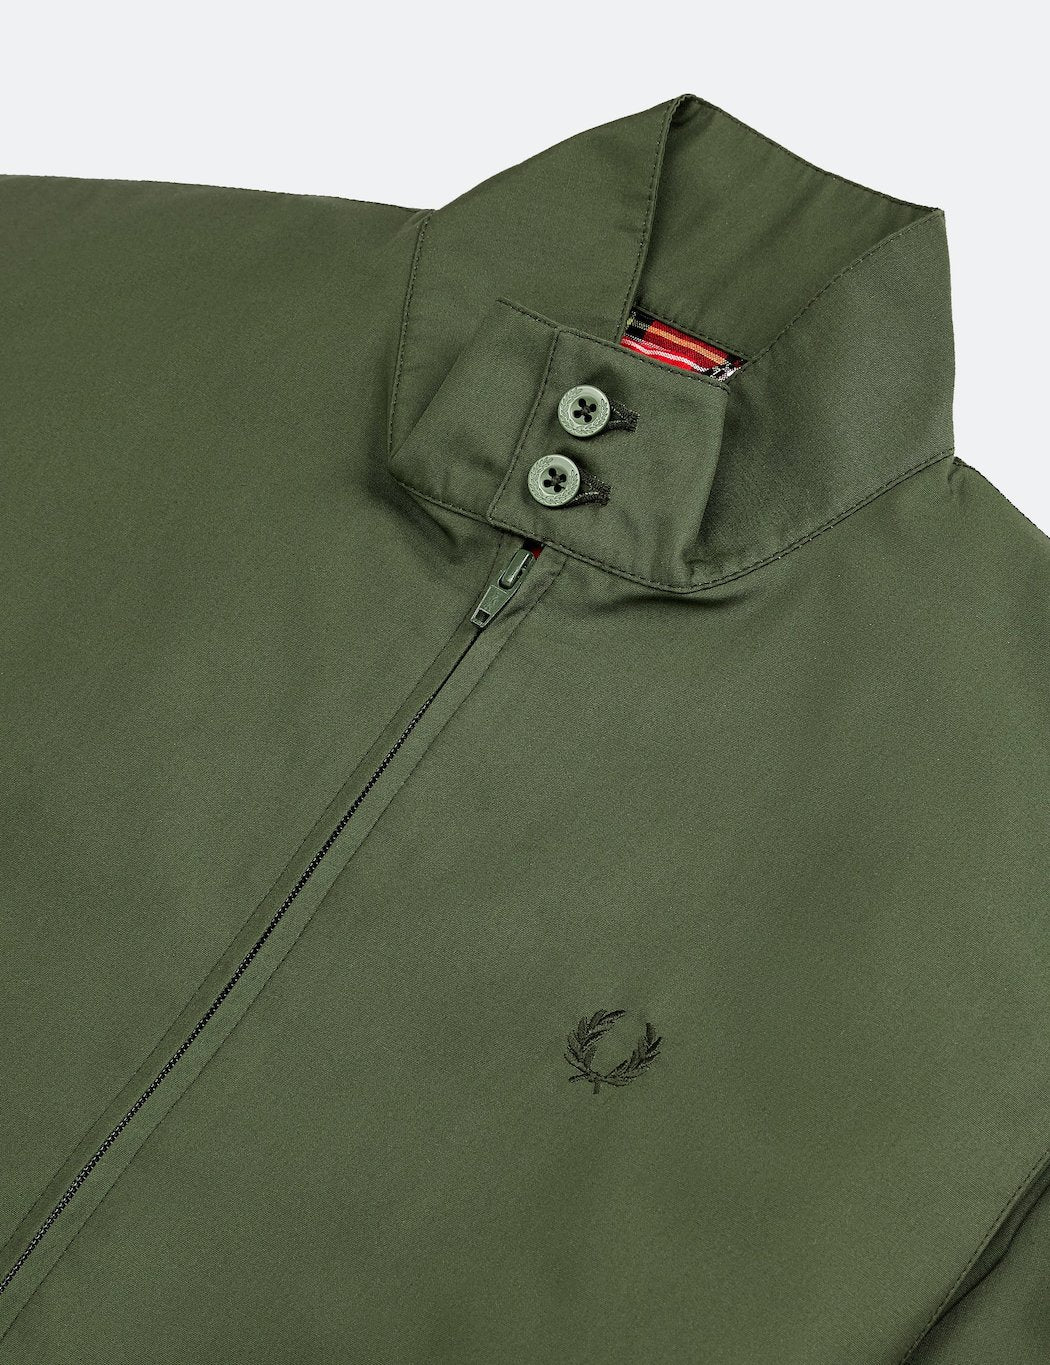 Fred Perry Re-issues Harrington Jacket (Made in UK) - Olive Green